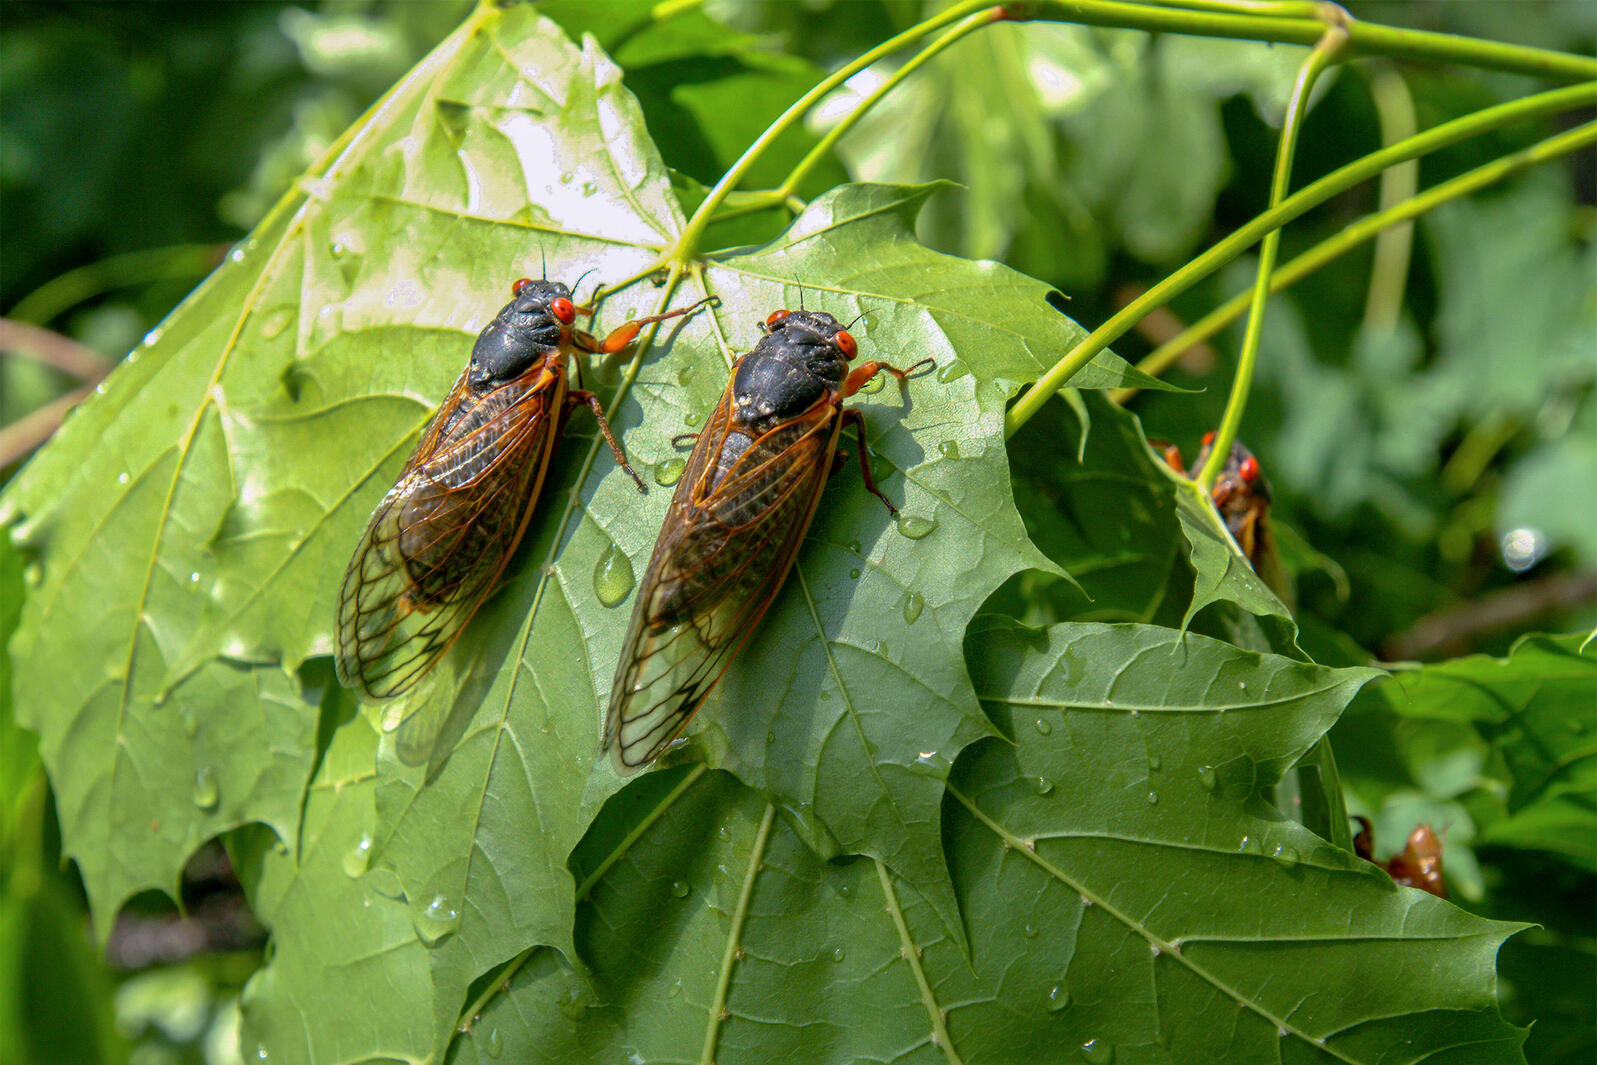 Periodical cicadas from Brood X during their last emergence in 2004. Michael Ventura/Alamy